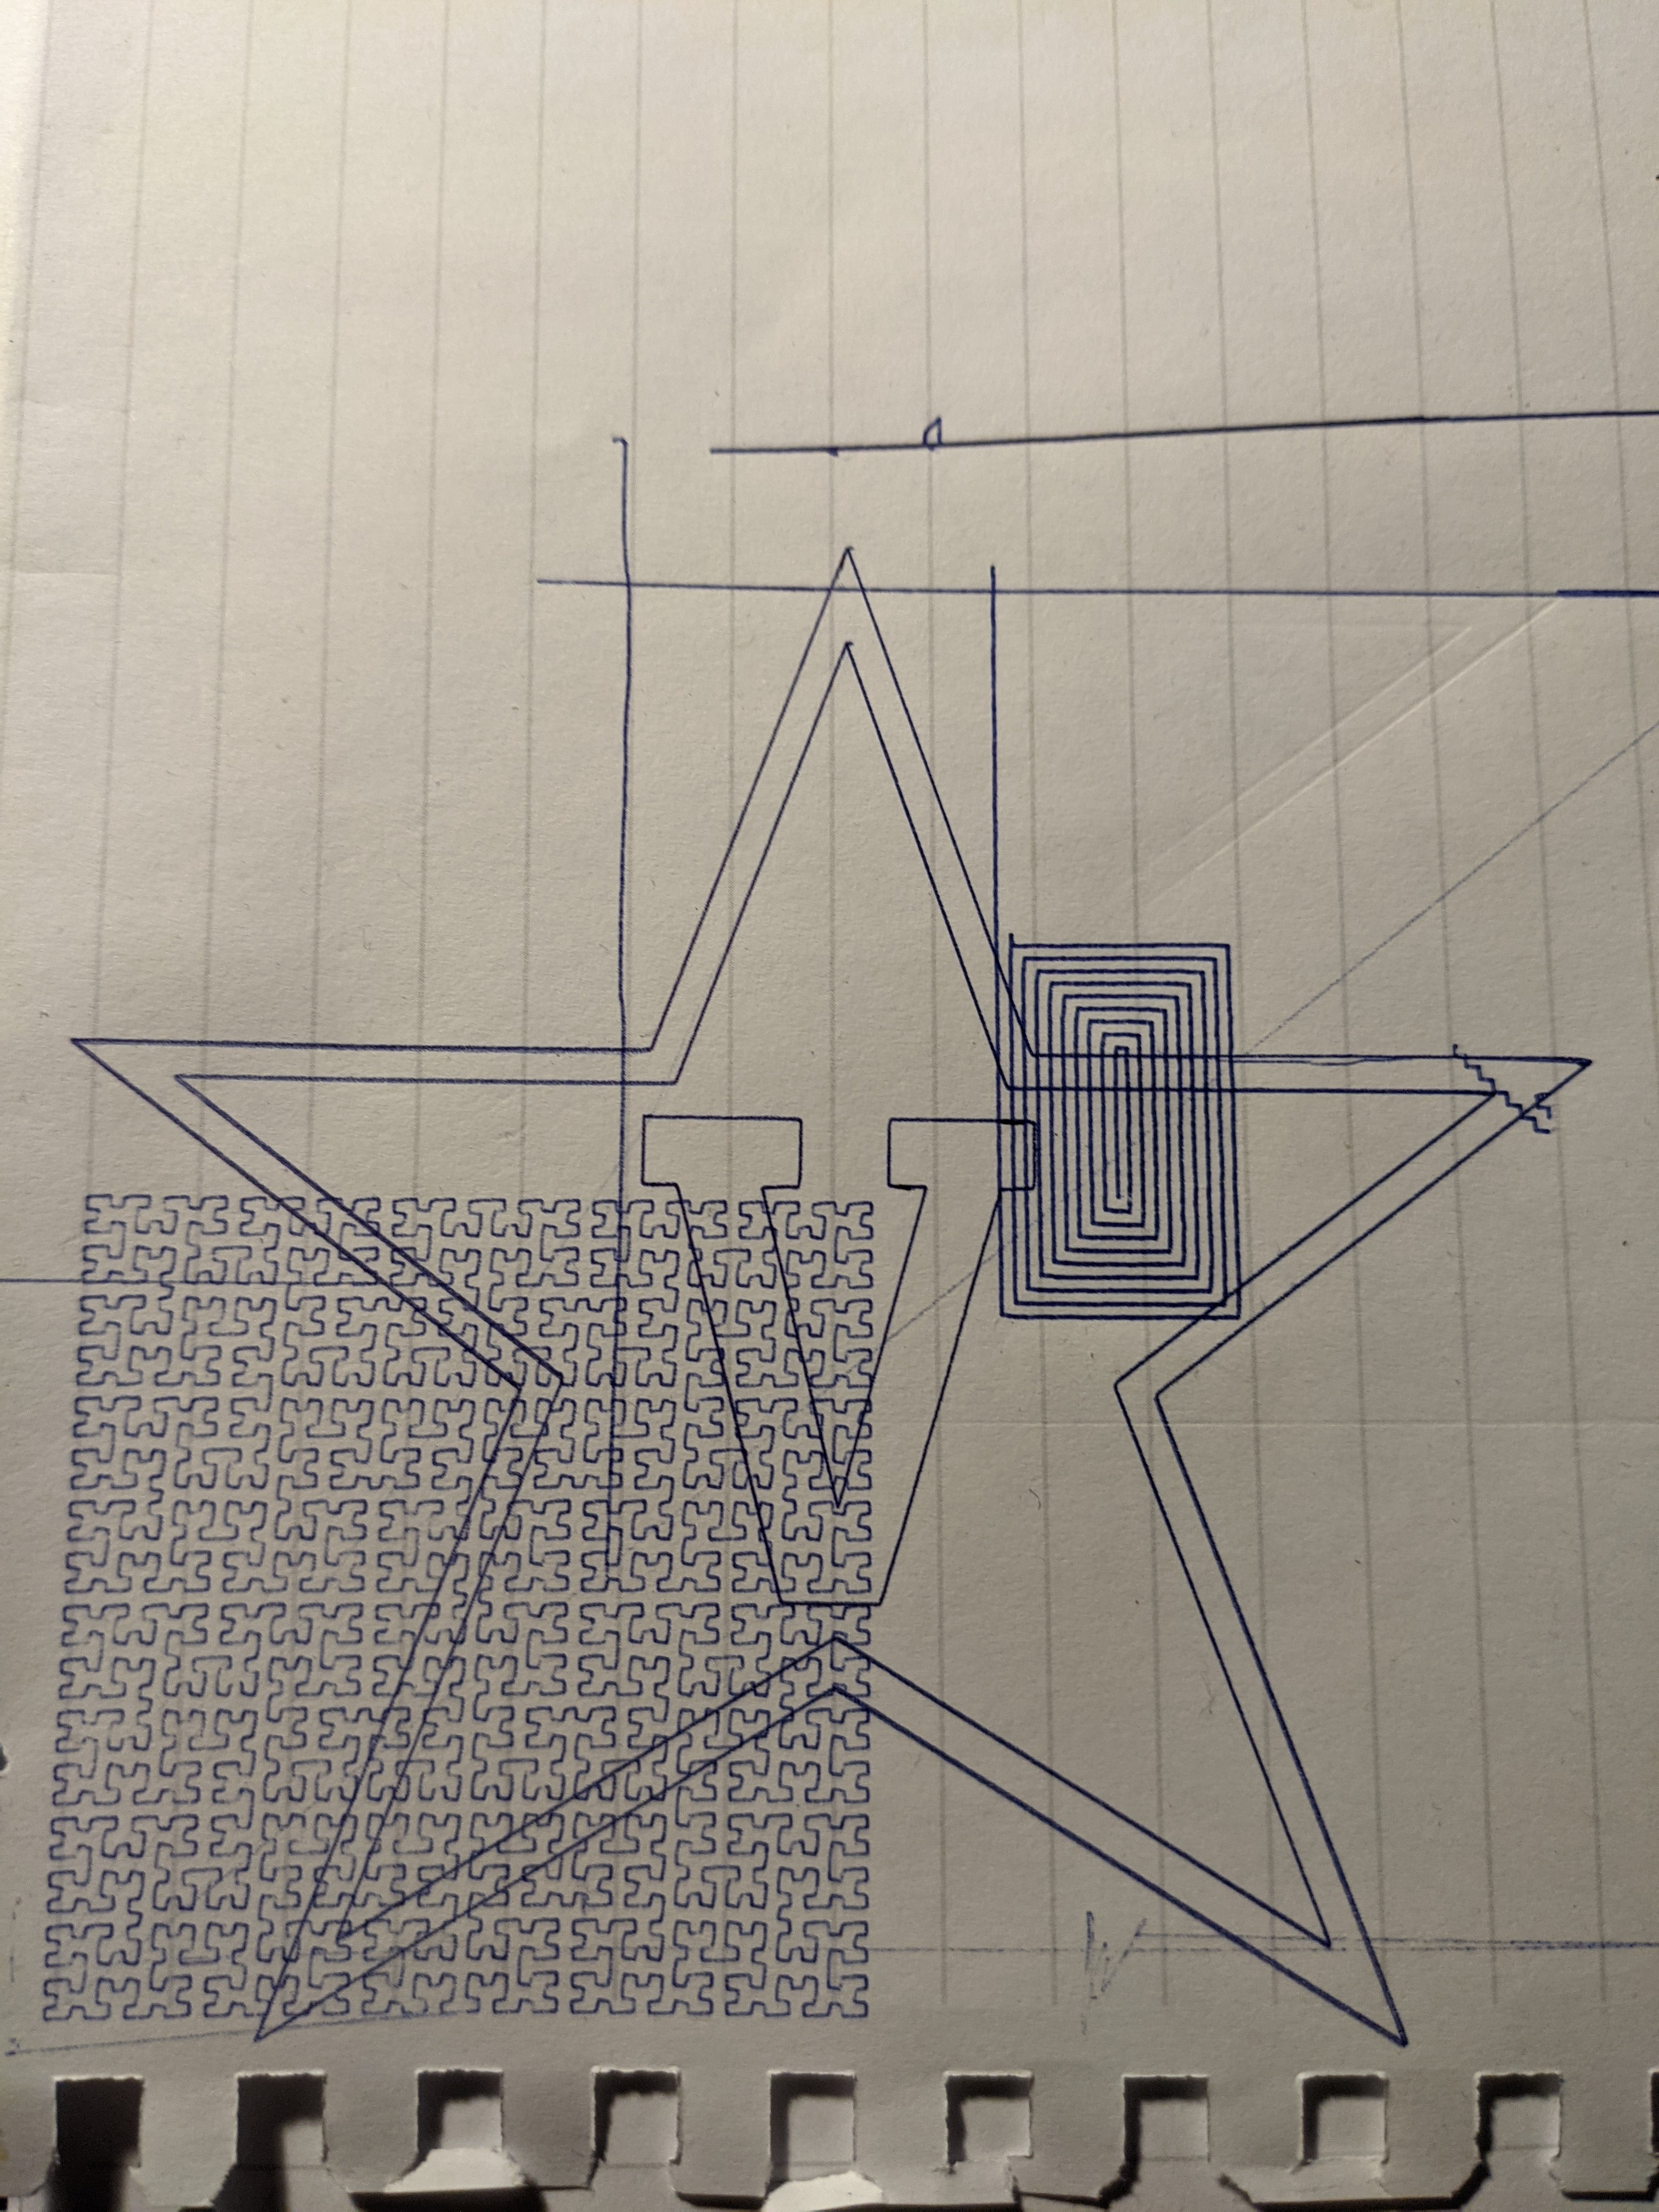 Picture of a 5-point star drawn by a pen plotter using a blue pen